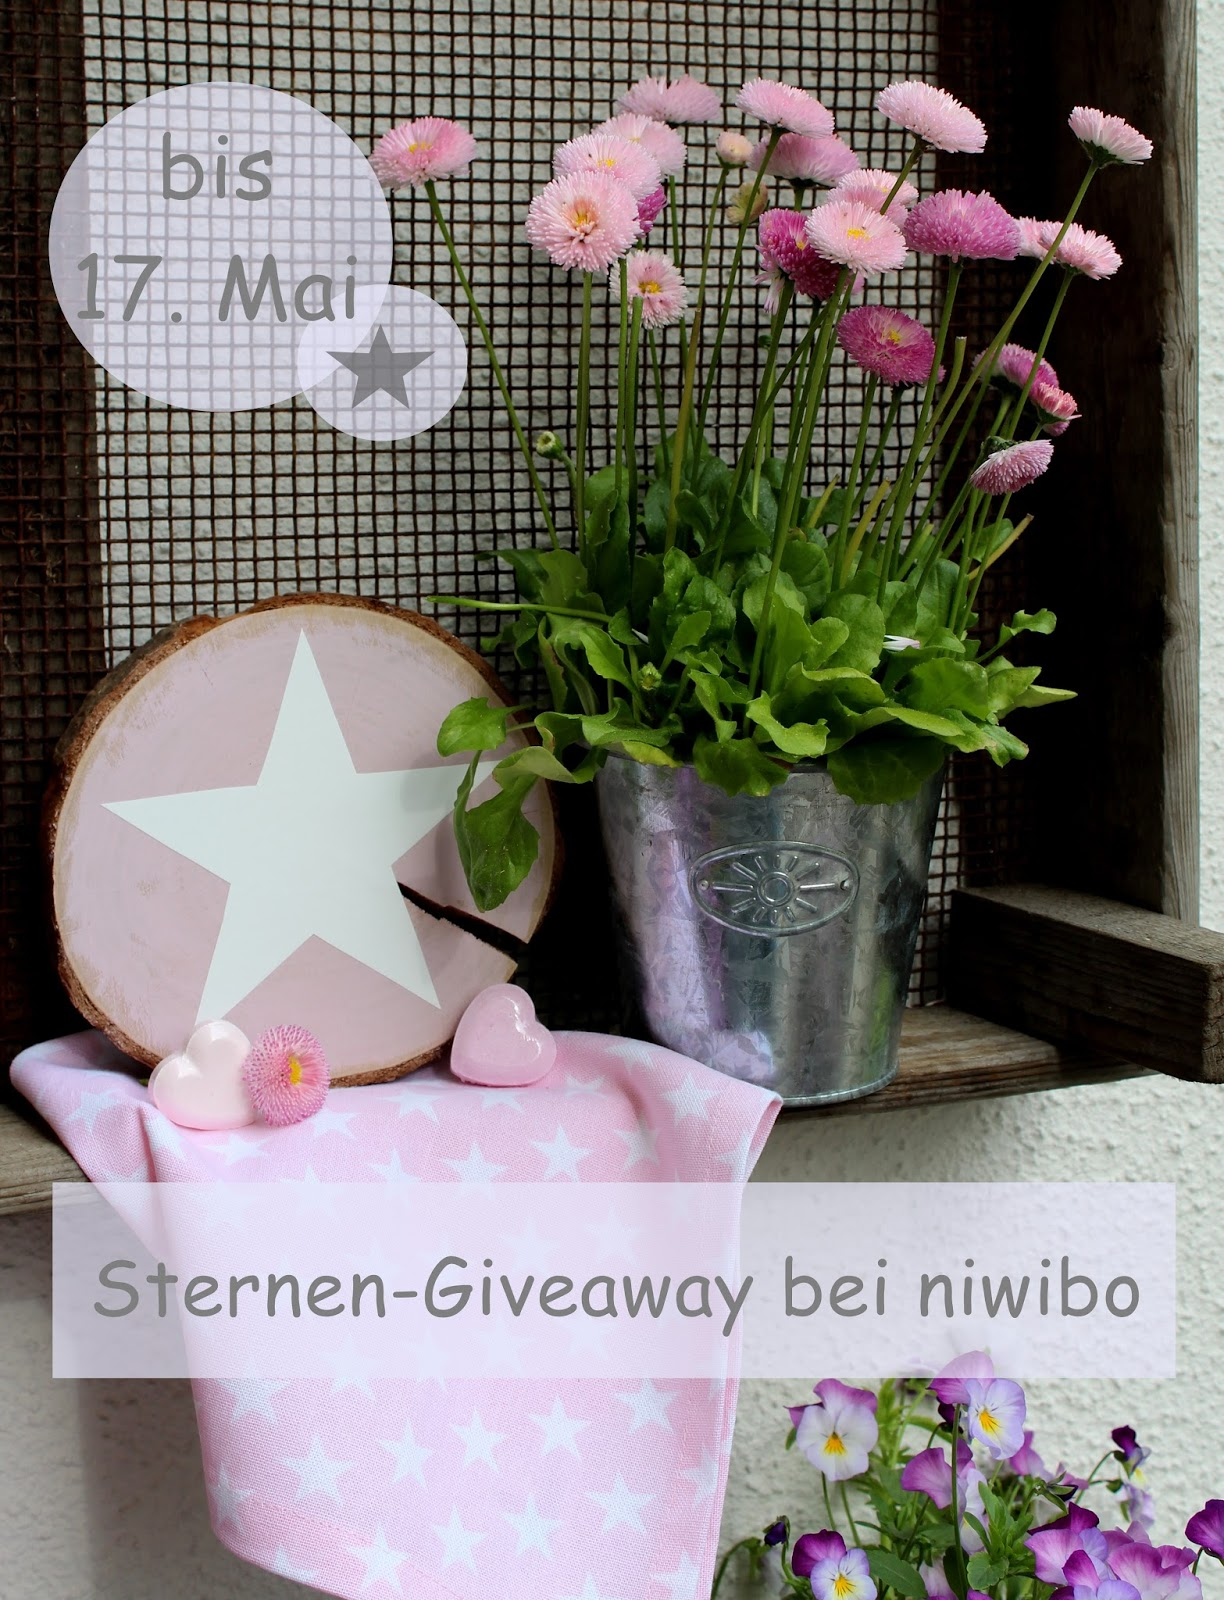 Sternen-Giveaway